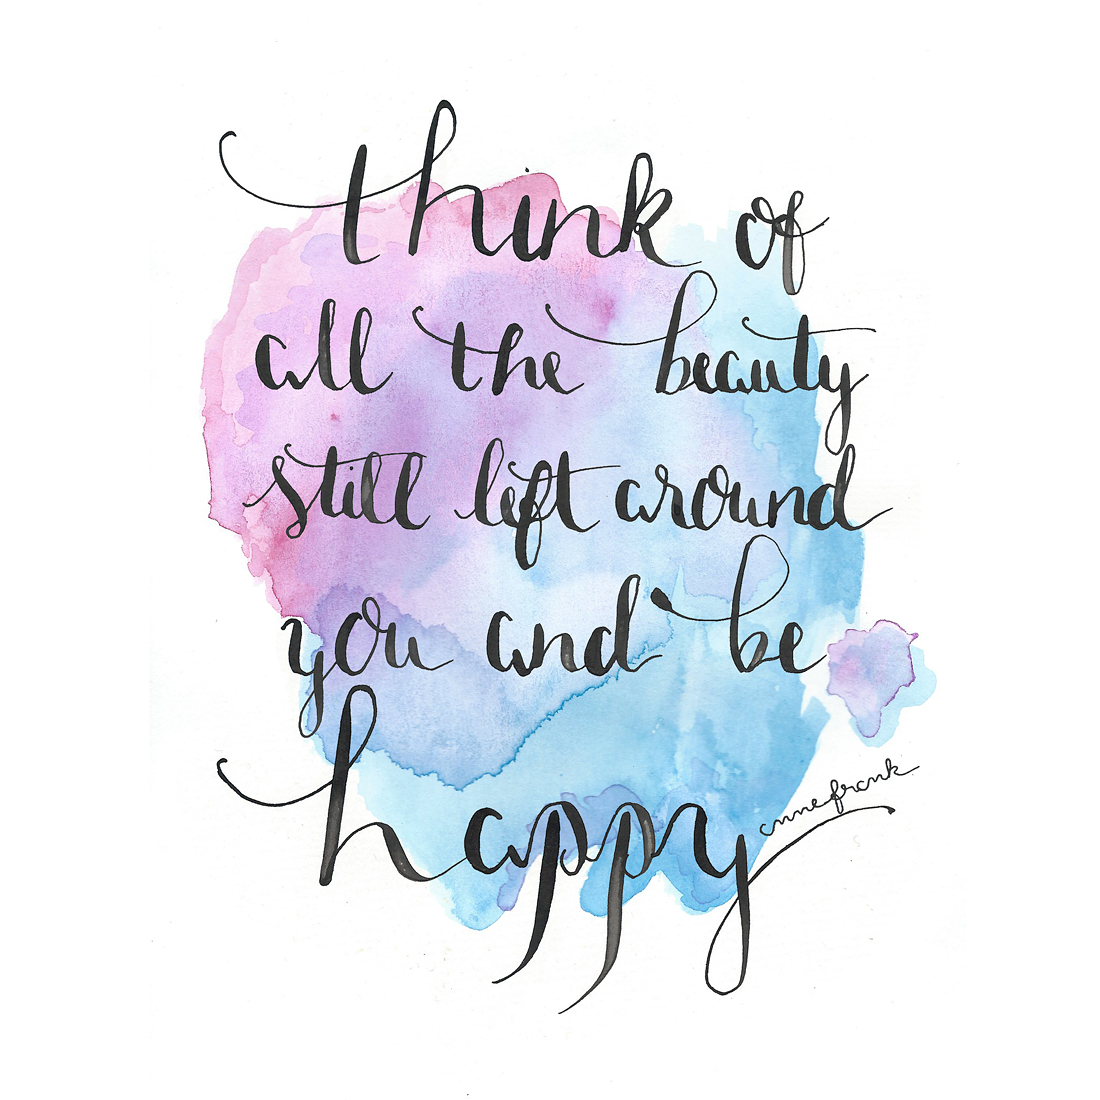 Cute Quotes On Life And Happiness: Quotes About Calligraphy (65 Quotes